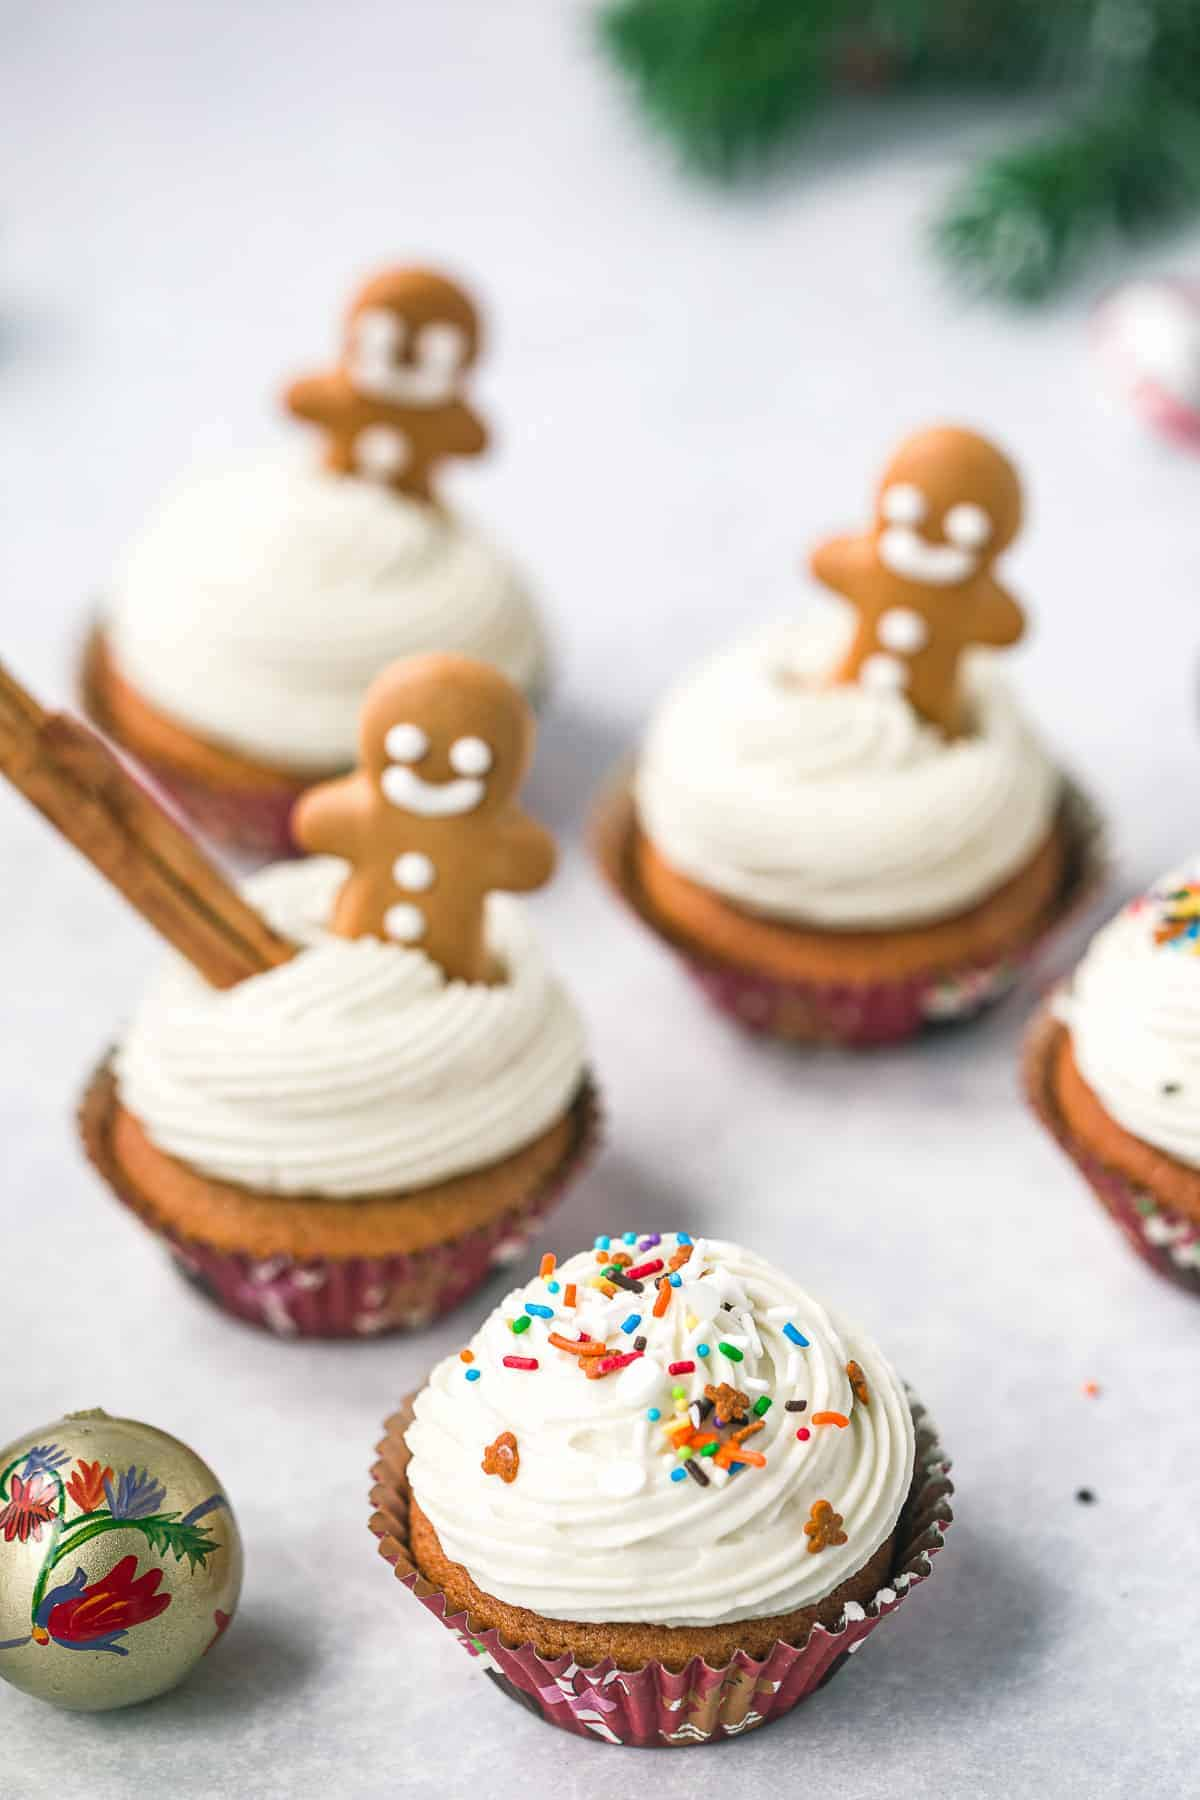 Christmas cupcakes on a white background.